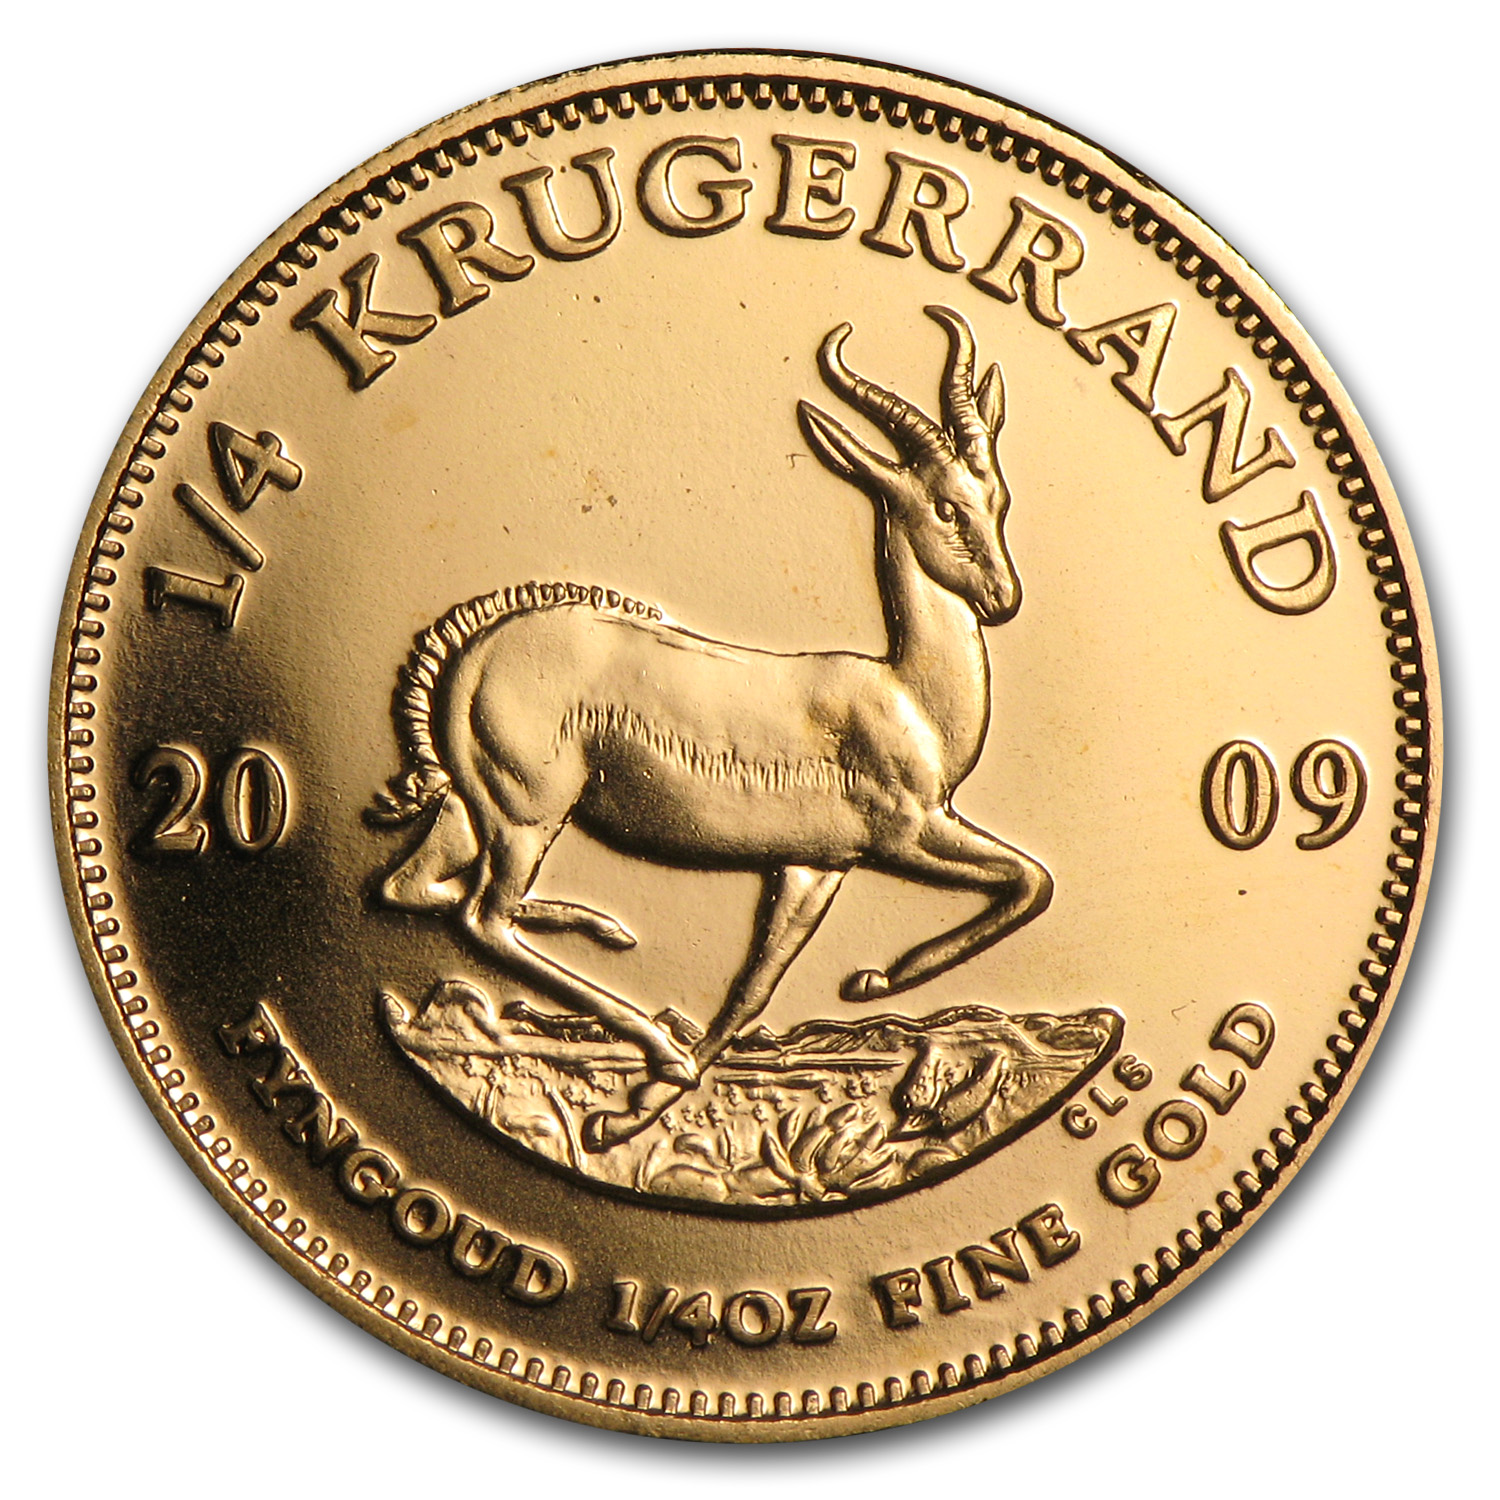 2009 South Africa 1/4 oz Gold Krugerrand